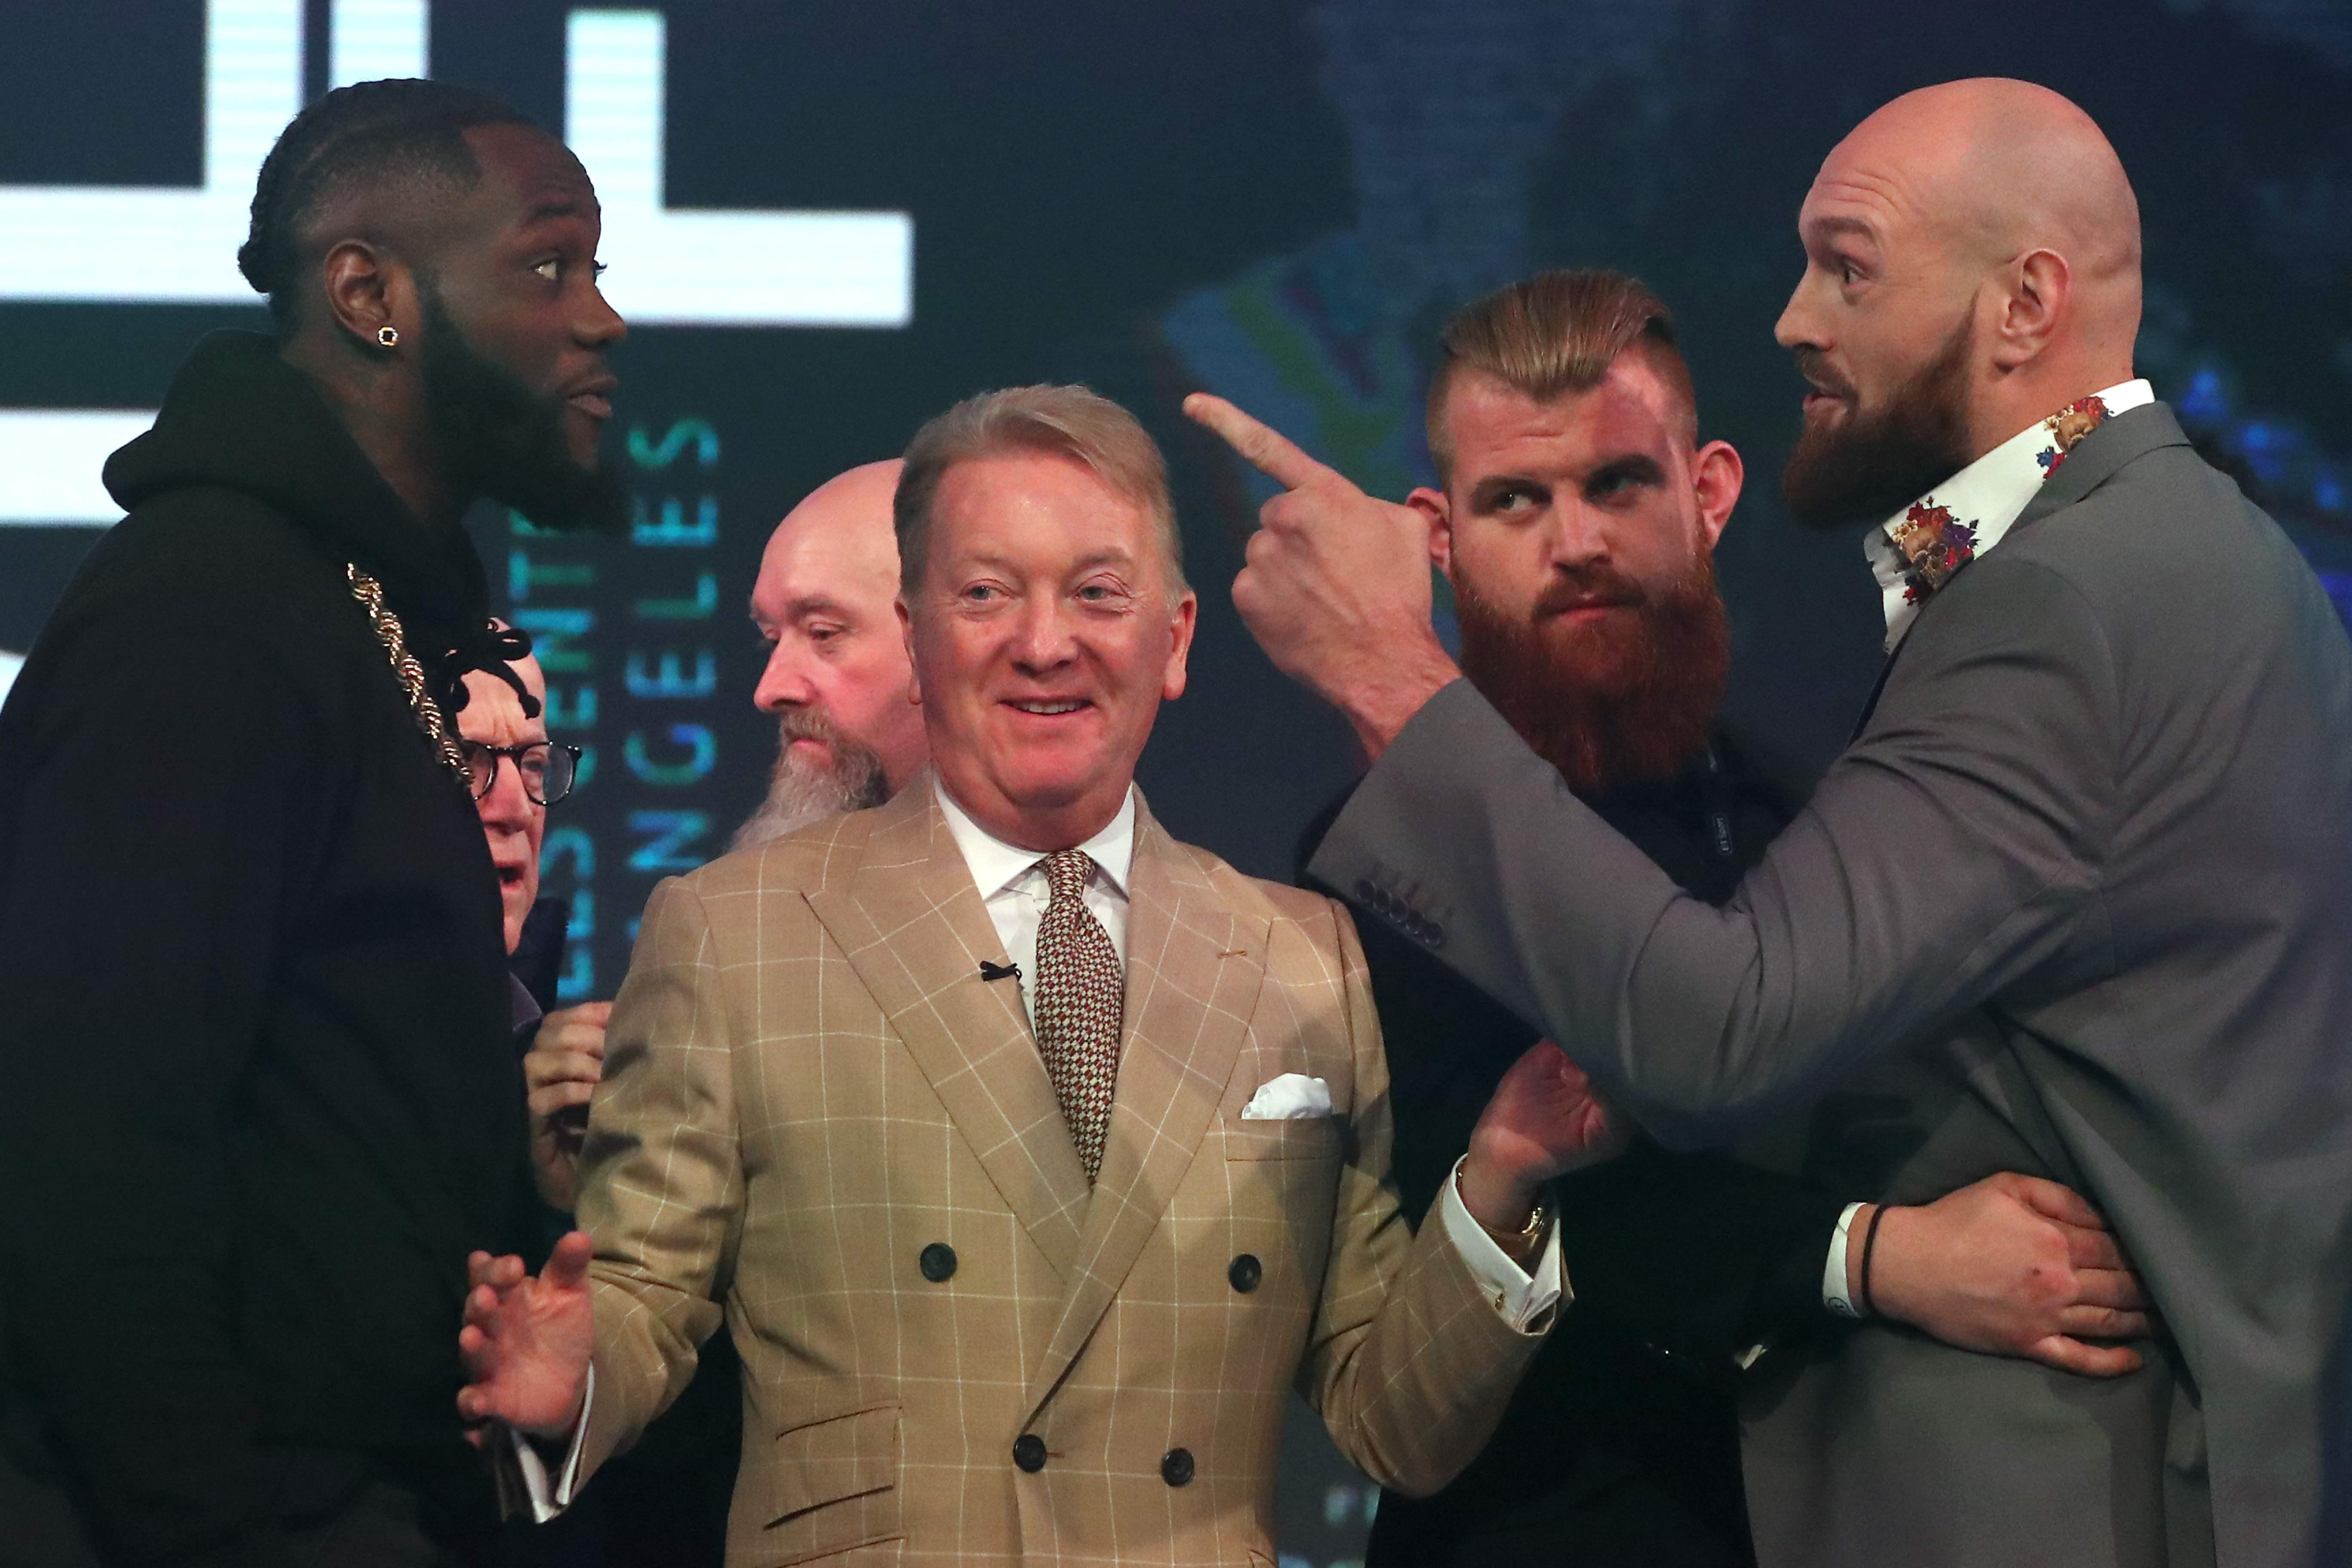 Frank Warren is currently in America where he is promoting Tyson Fury's December 1 bout against Deontay Wilder